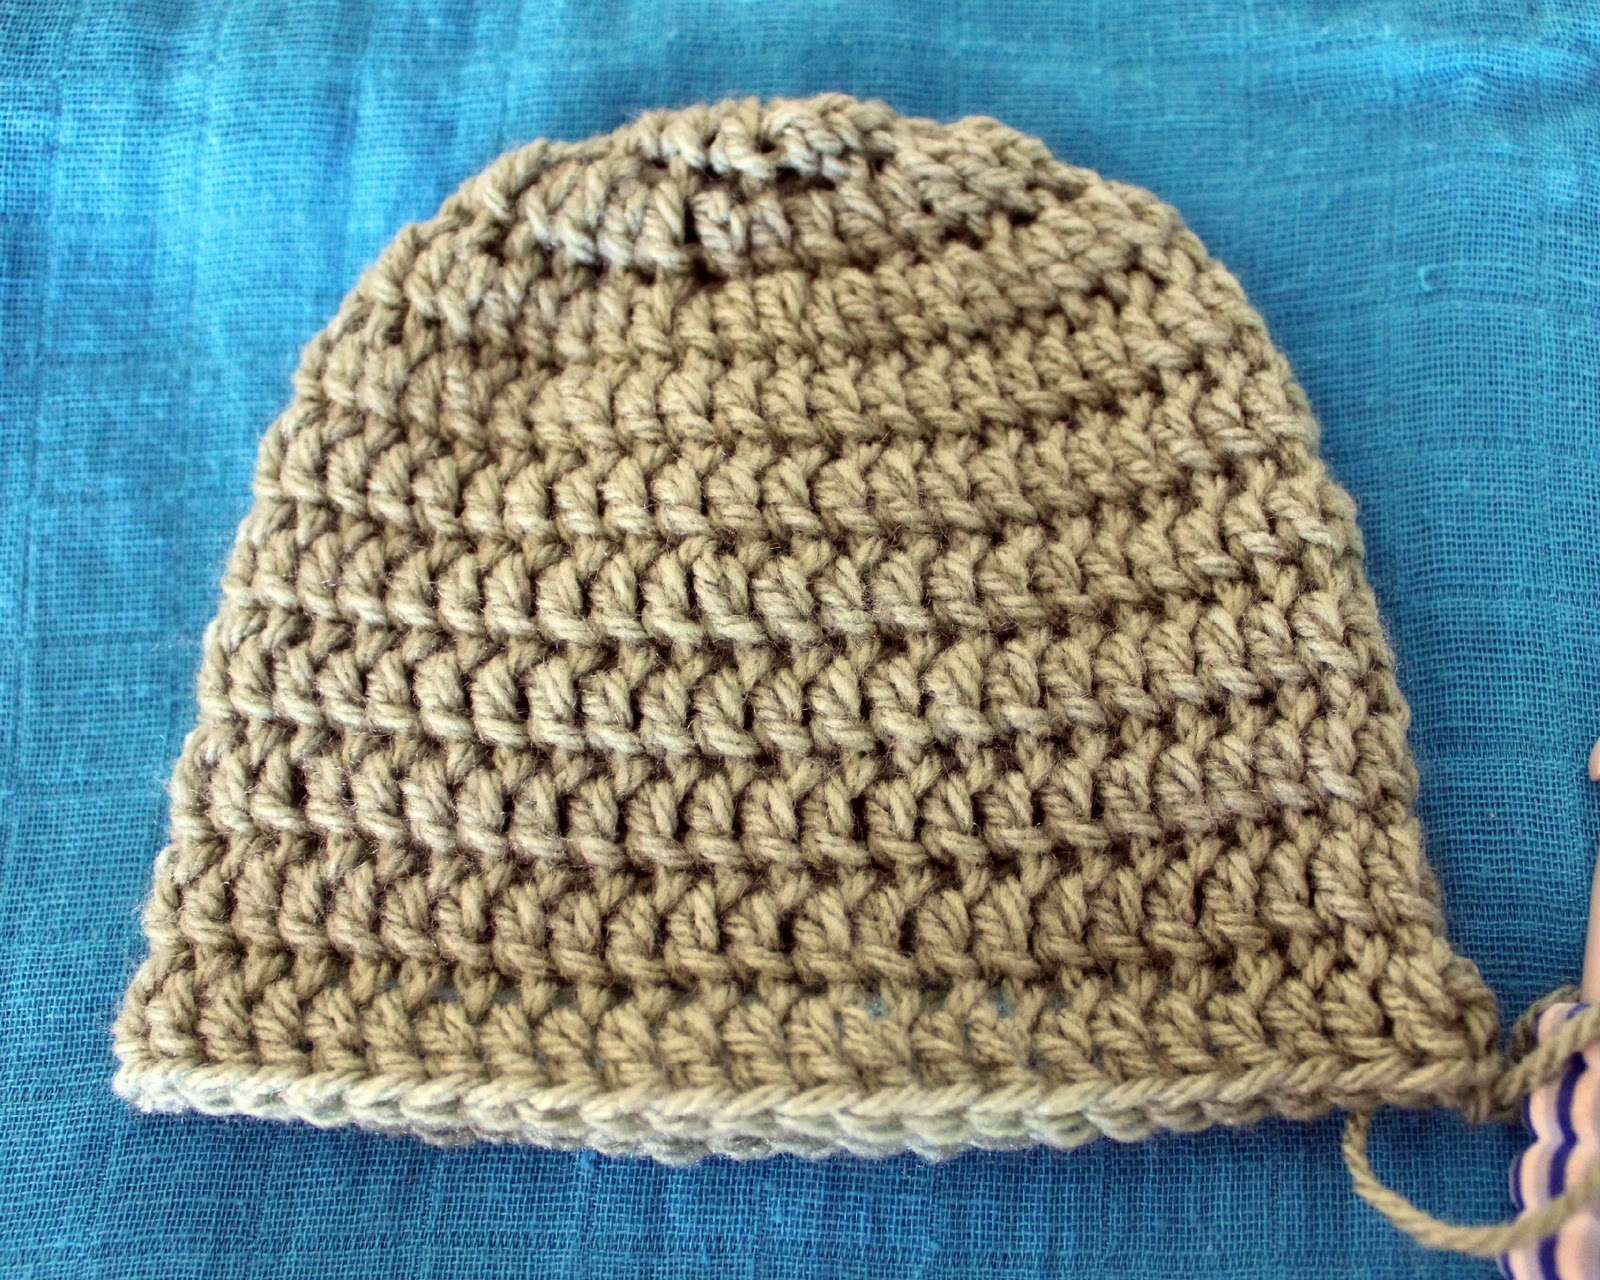 Free Crochet Pattern Basic Beanie : My Free Newborn Crochet Beanie Pattern - Move Fuel Love